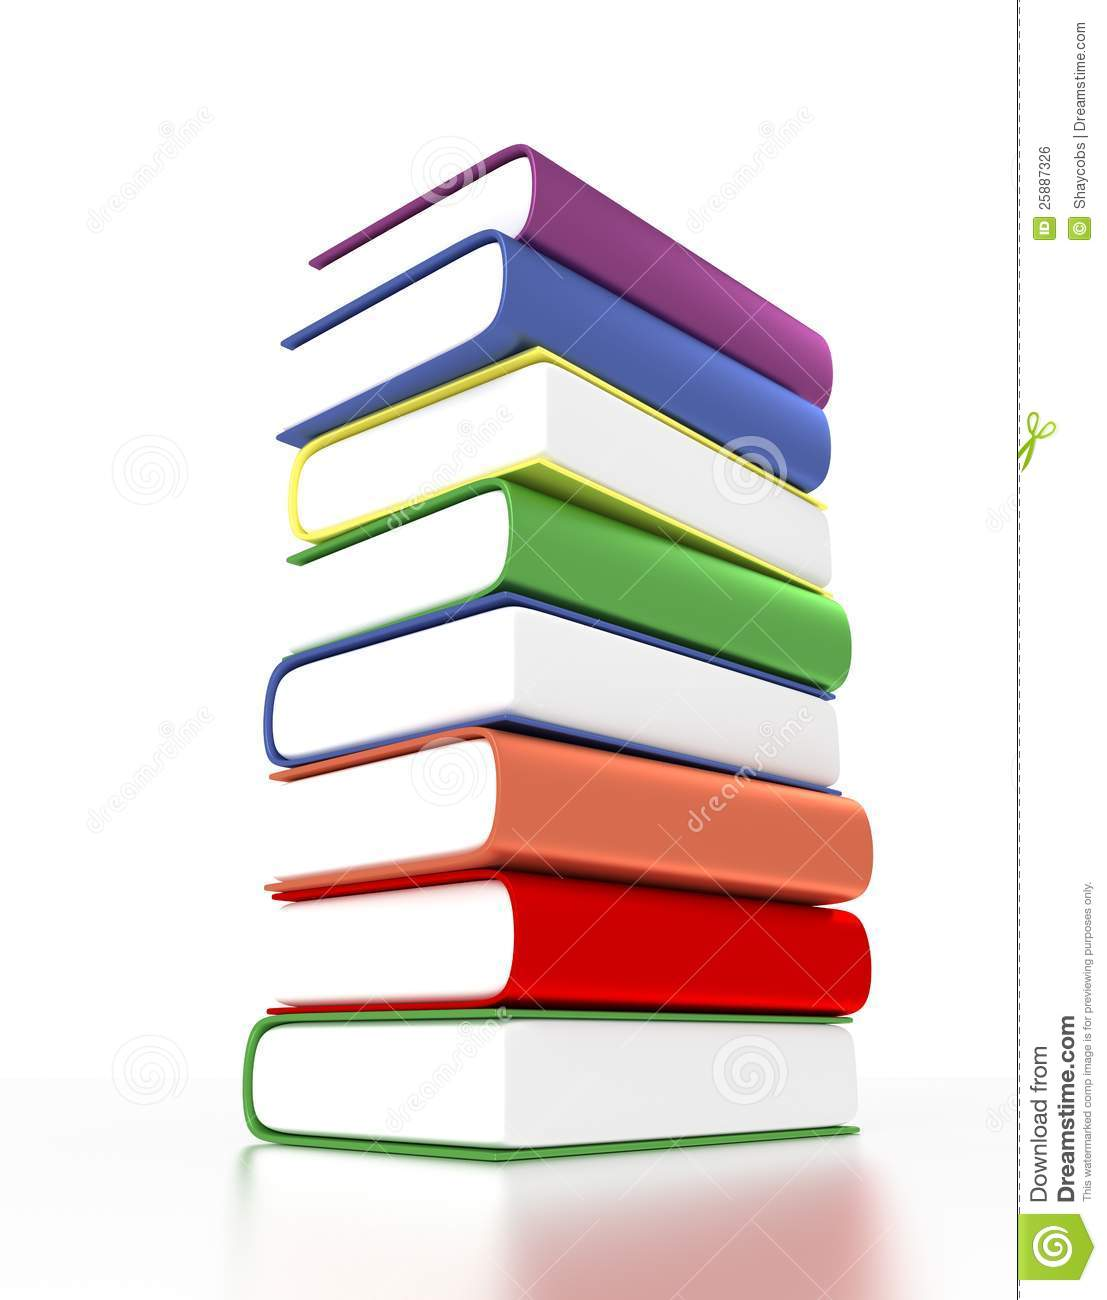 3d Pile Of Books With Different Colors Royalty Free Stock Image Image 25887326